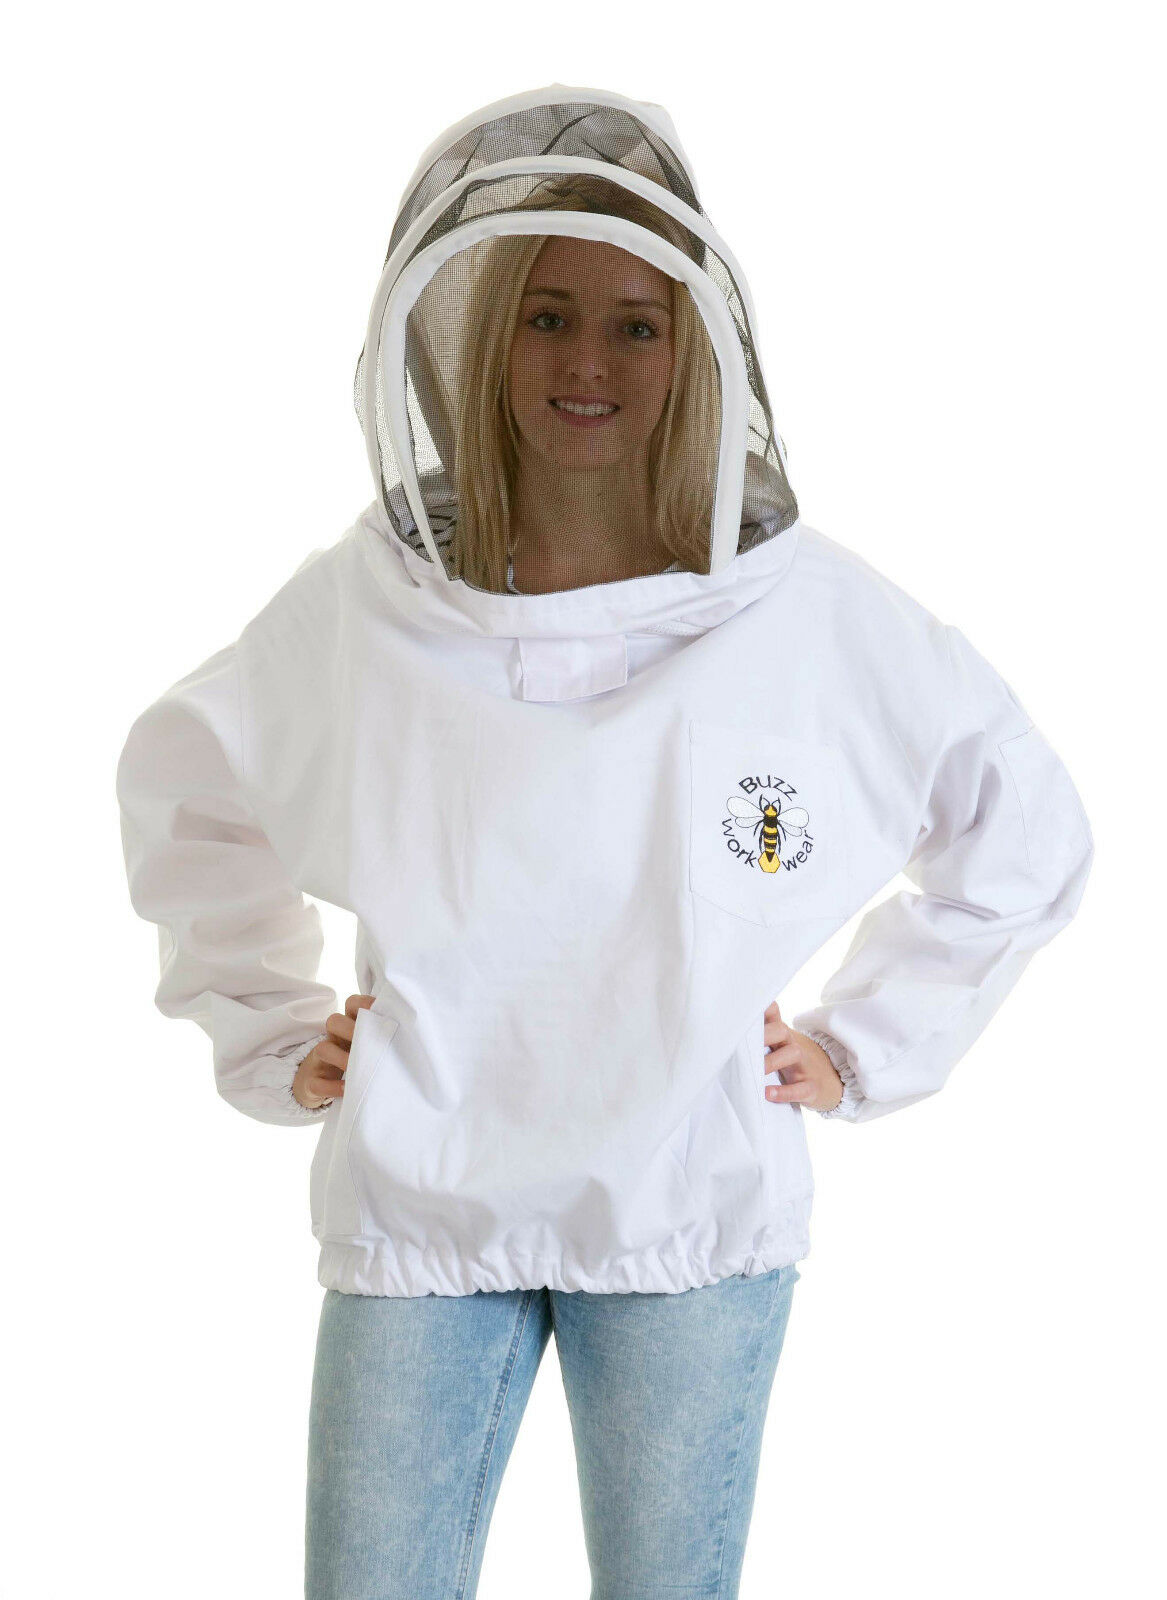 Buzz Beekeepers Jacket/Tunic (Fencing veil) - ALL SIZES